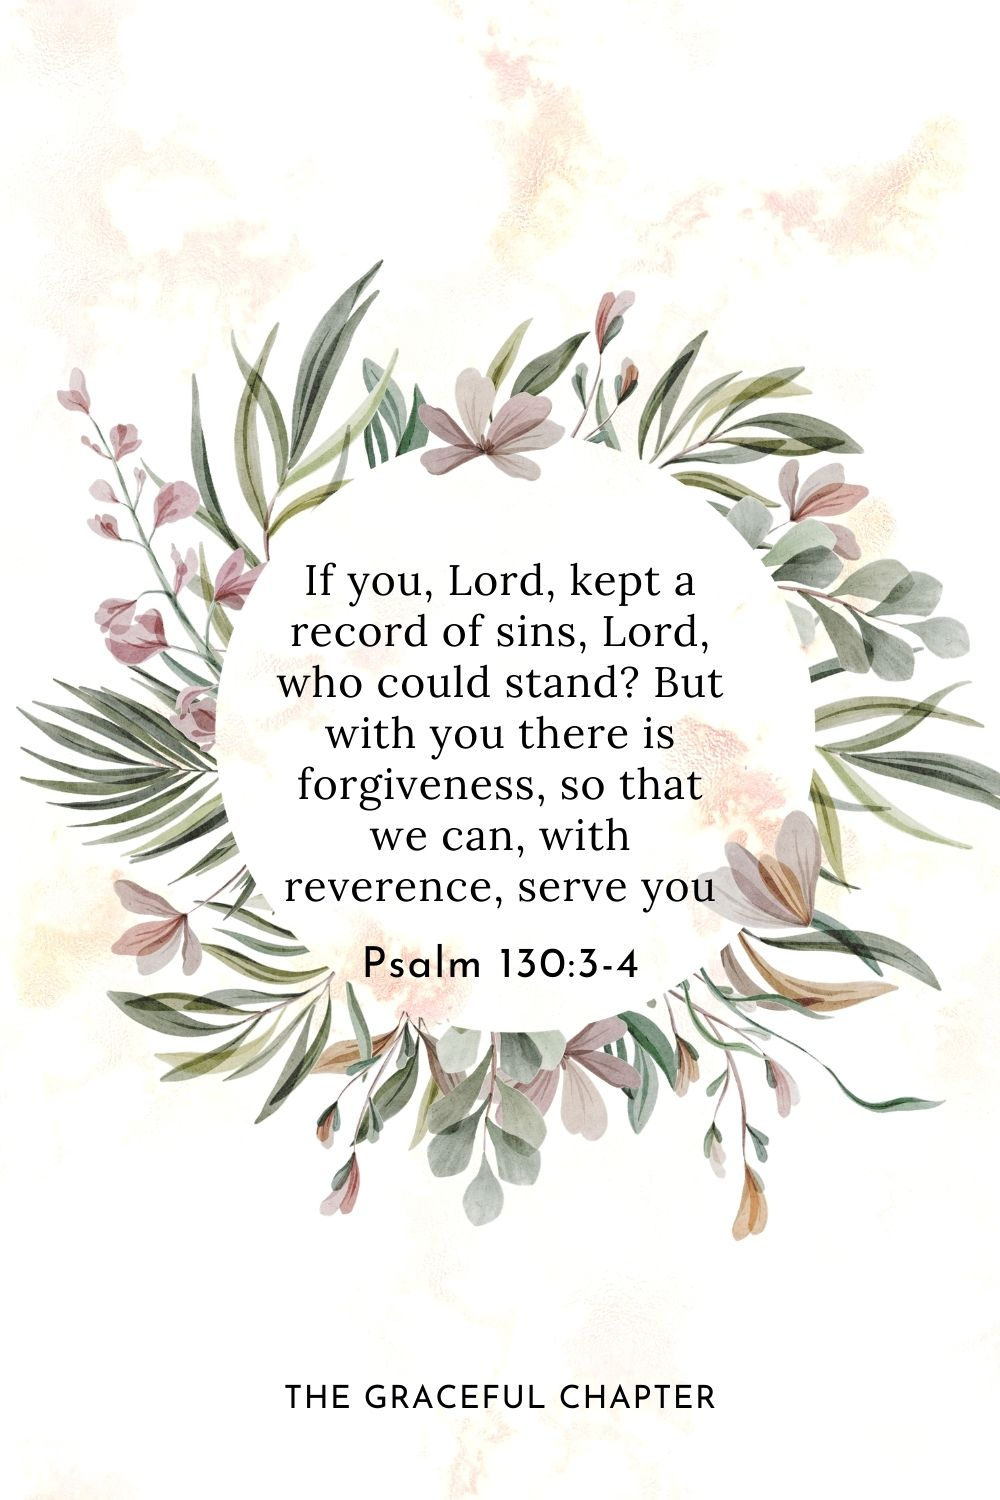 If you, Lord, kept a record of sins, Lord, who could stand? But with you there is forgiveness, so that we can, with reverence, serve you Psalm 130:3-4